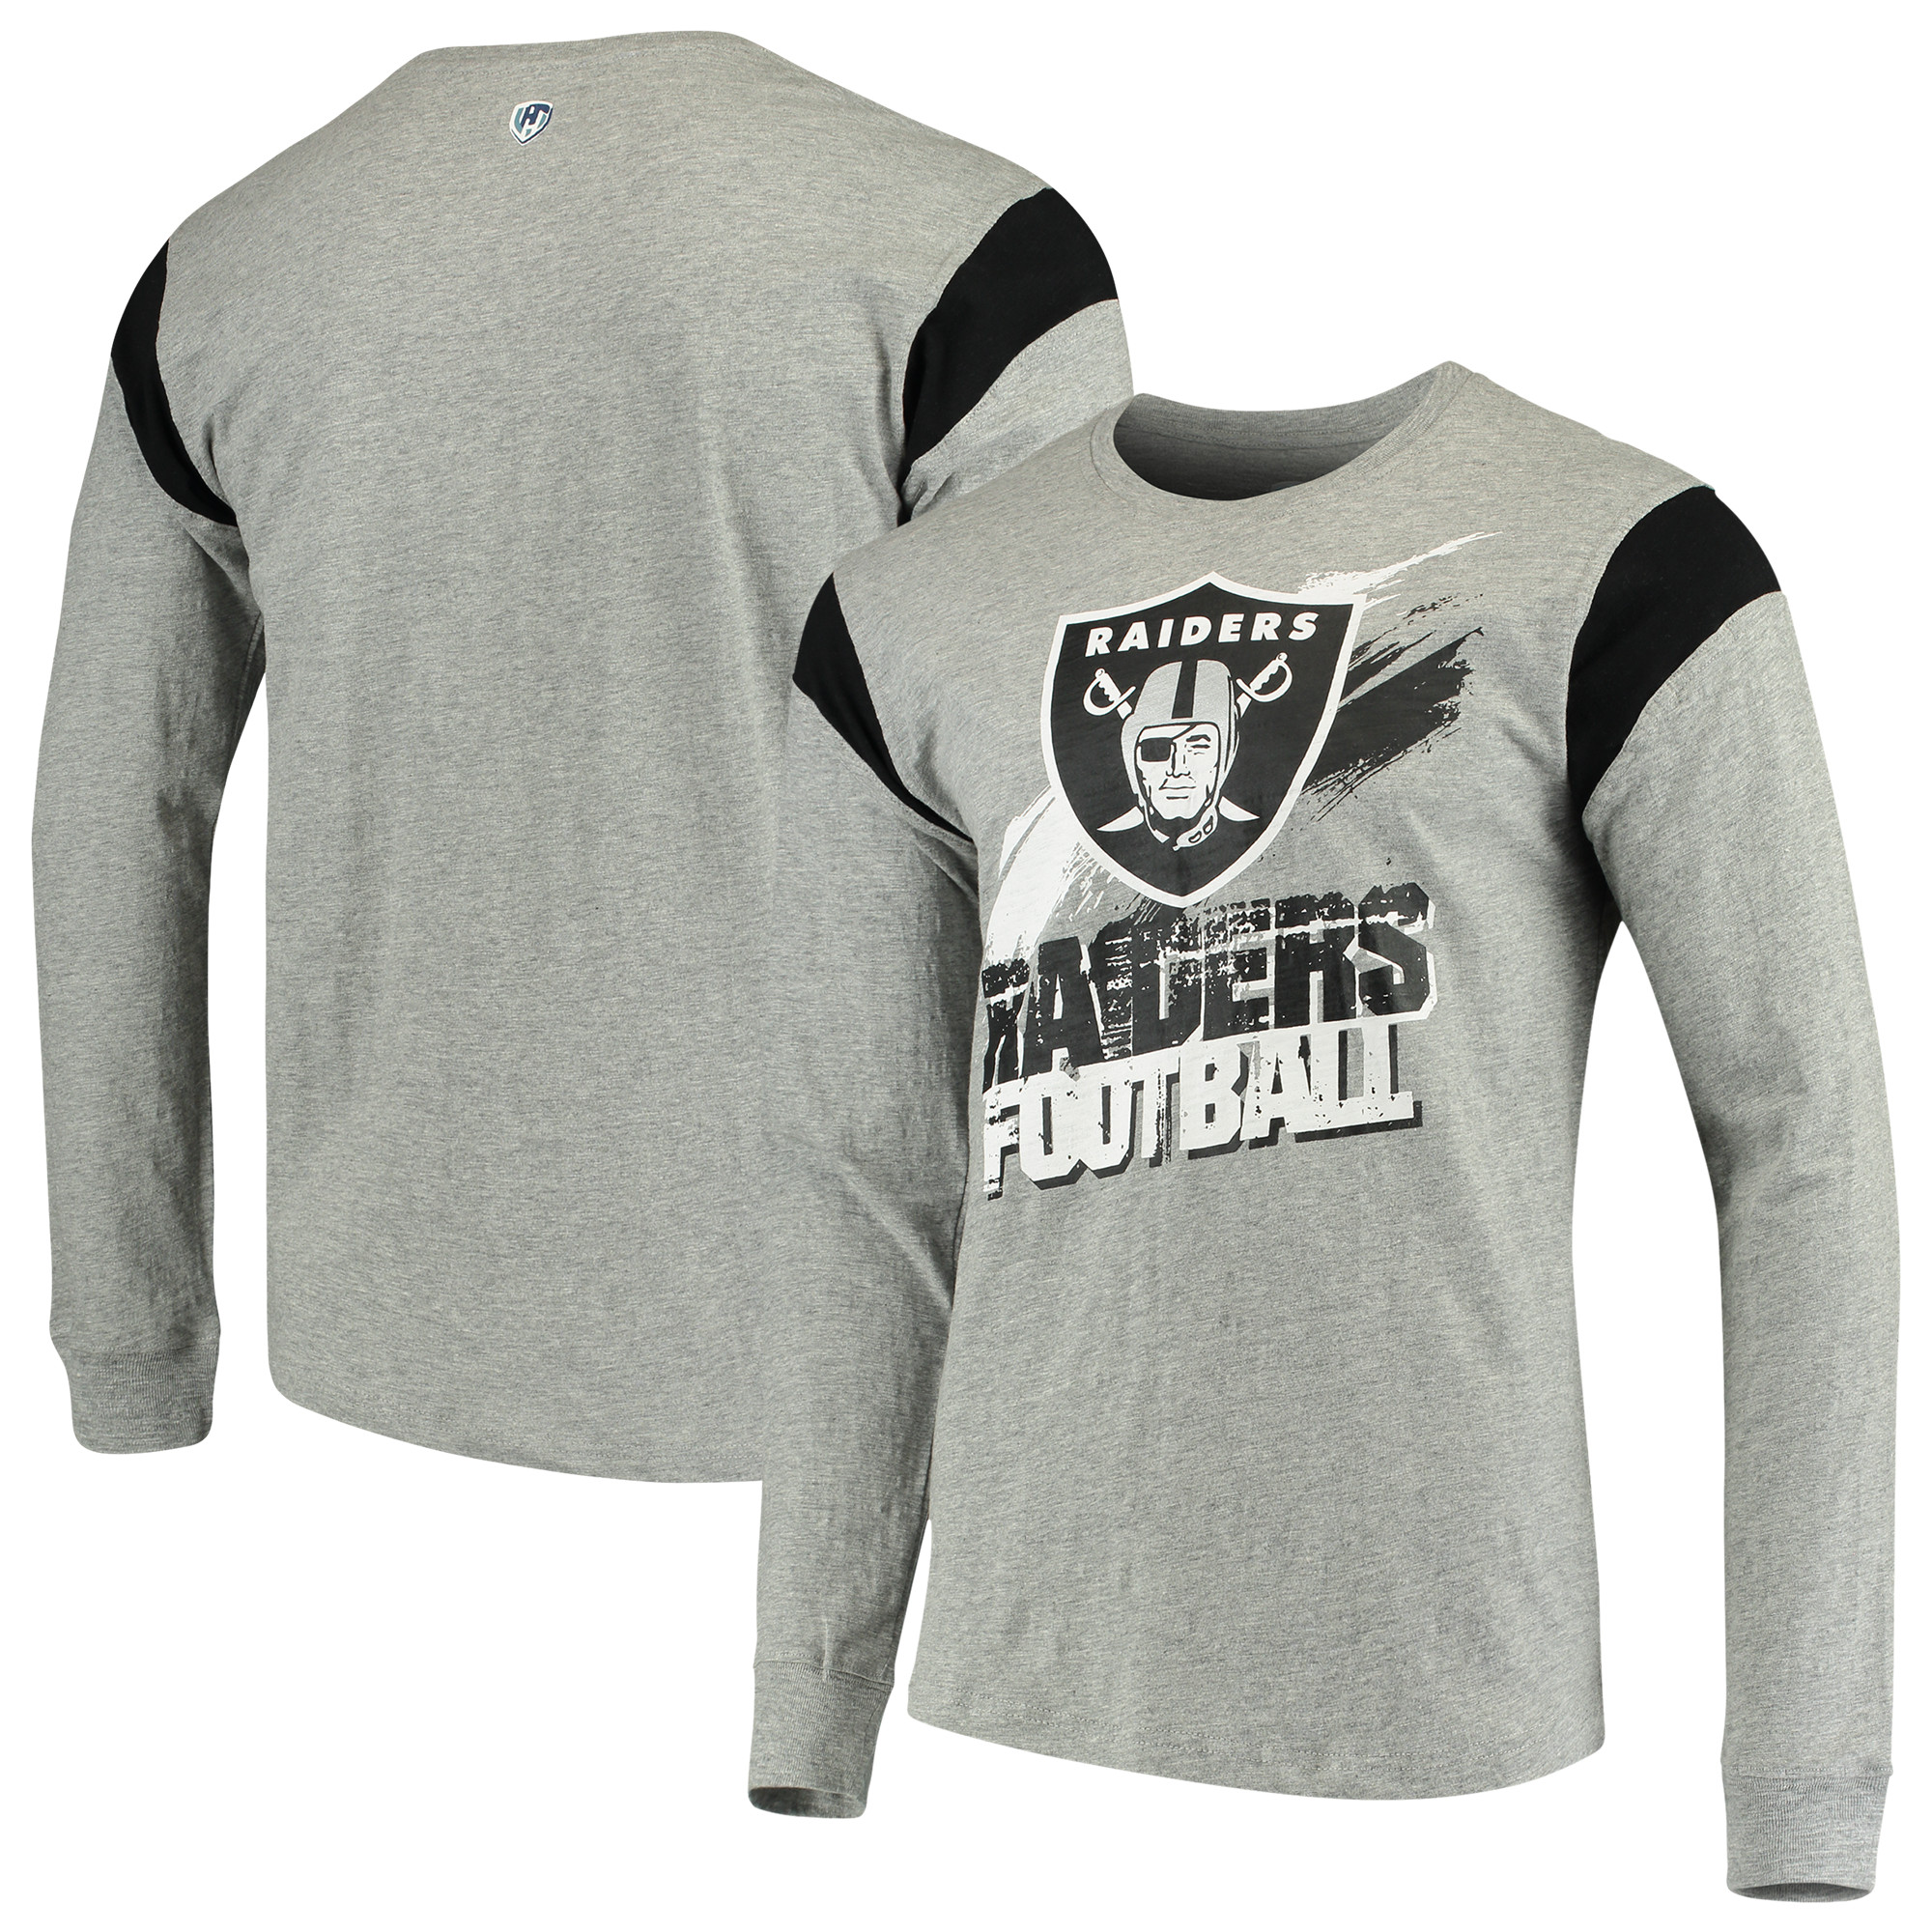 Oakland Raiders G-III Sports by Carl Banks Wide Receiver Long Sleeve T-Shirt - Heathered Gray/Black